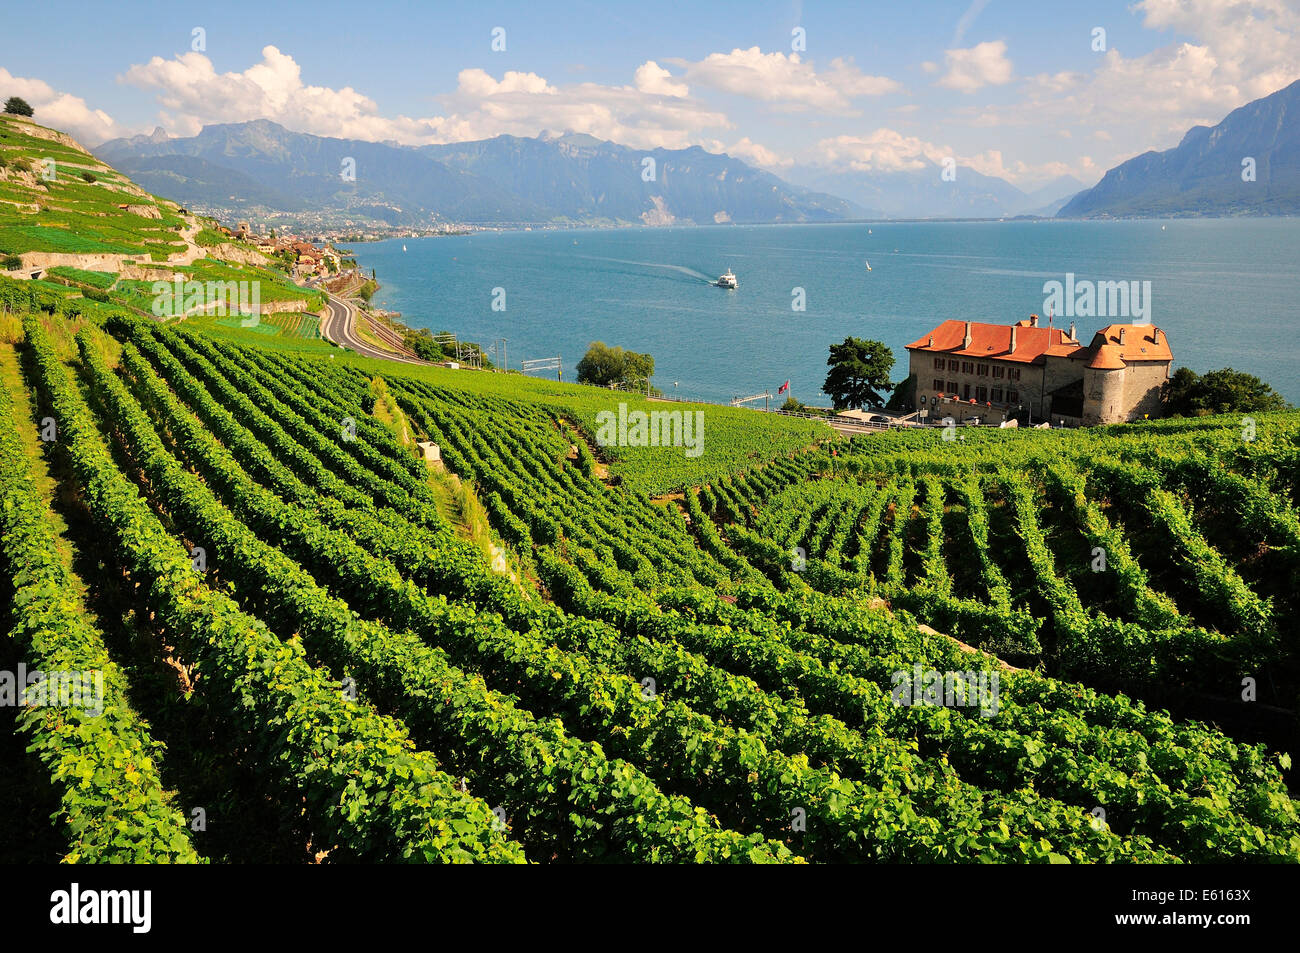 Views over the vineyards with Château de Glérolles and Lake Geneva towards the Swiss Rhone Valley, Saint - Stock Image